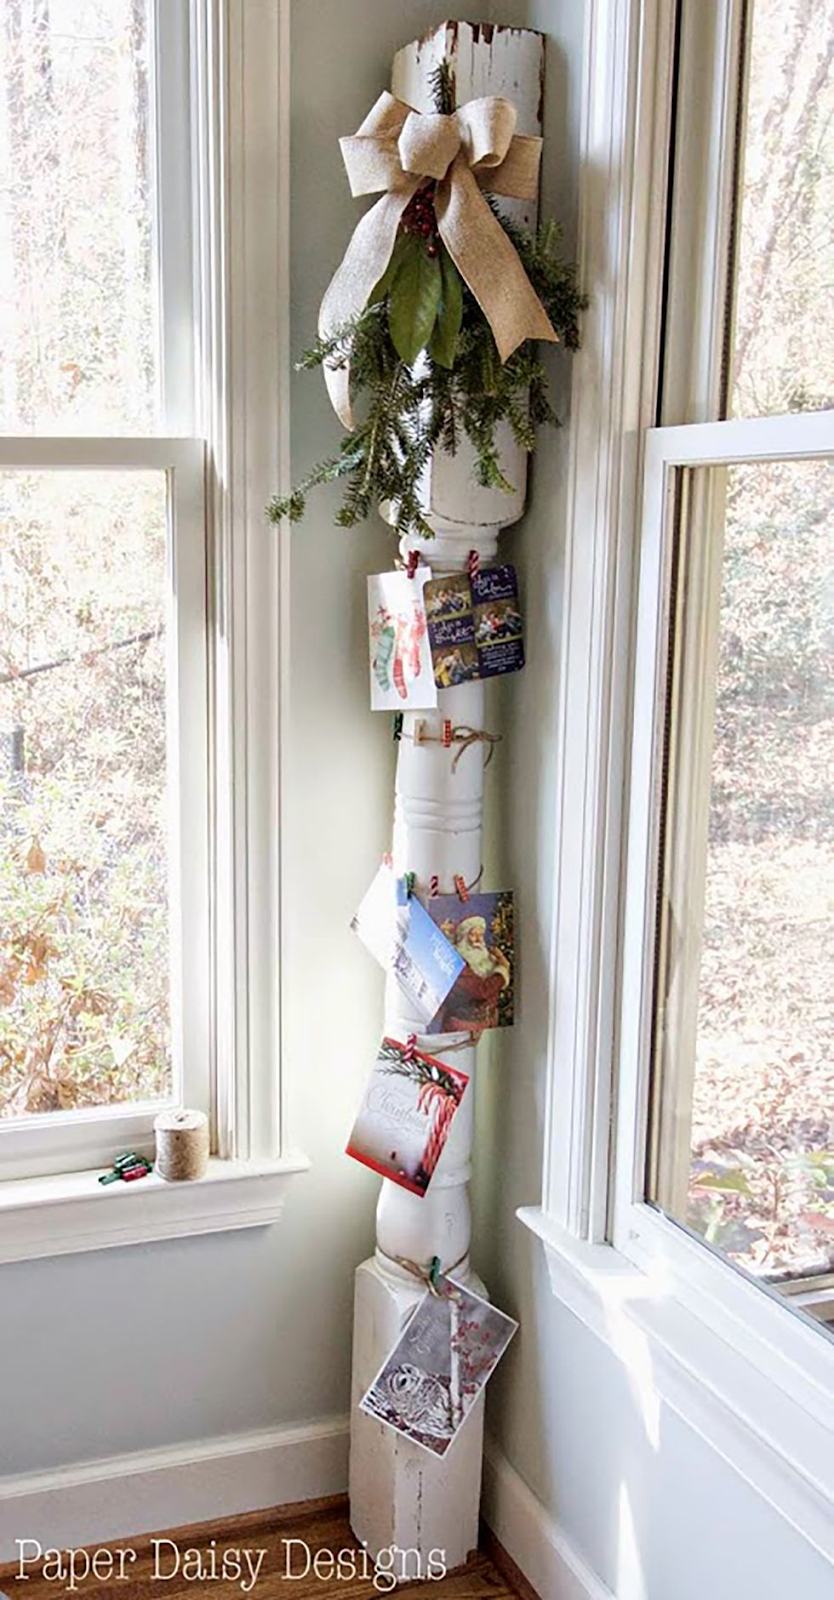 Old Post Card Holder: These 25 DIY Christmas Card Holders - That Double As Festive Decor will allow you to beautifuly display your cards and will also give you some great decor.